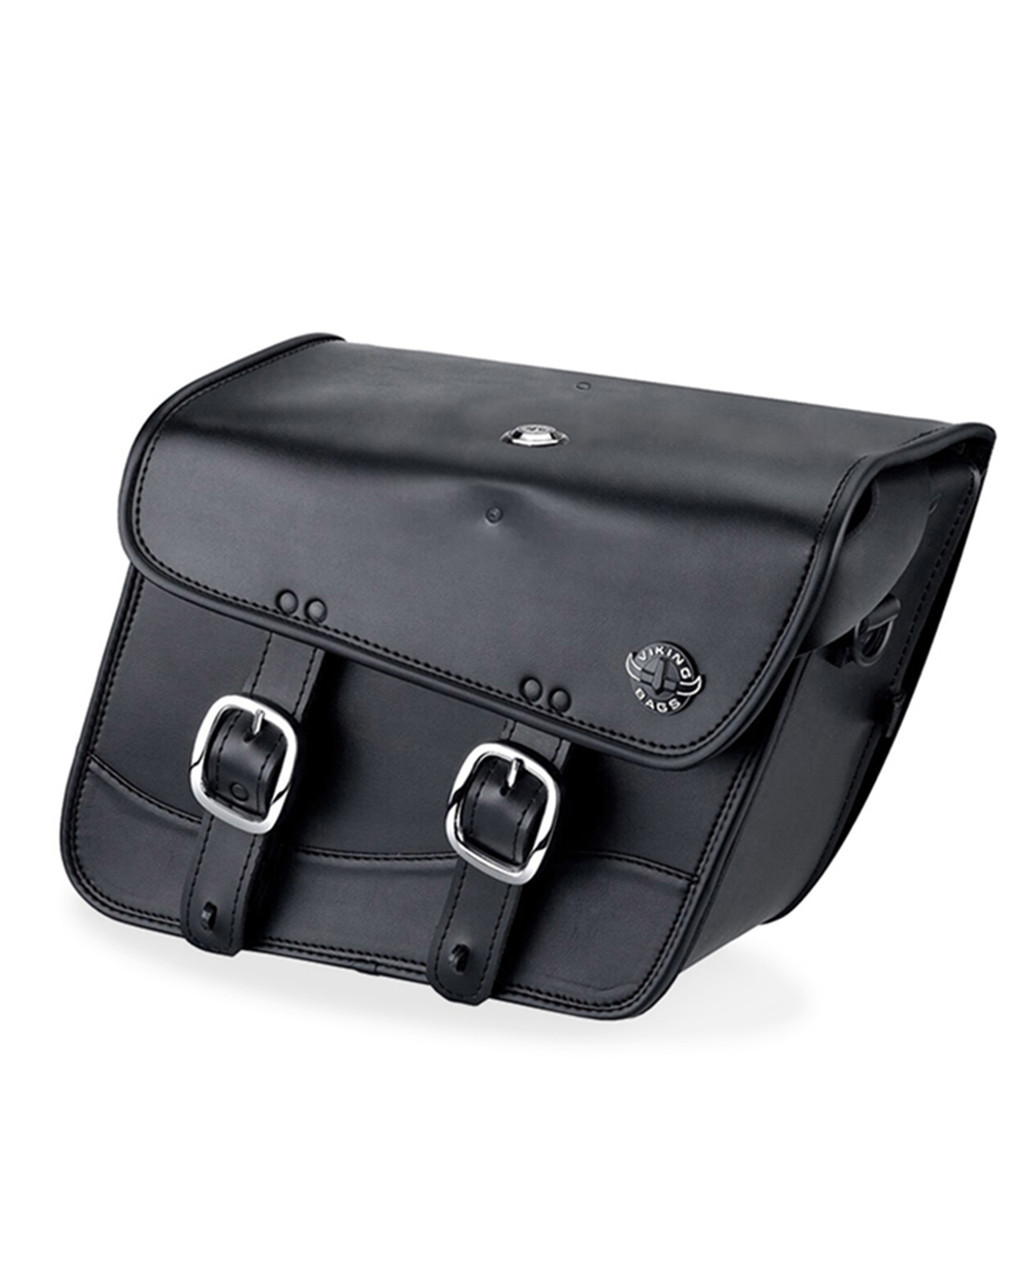 Honda 1500 Valkyrie Interstate Viking Thor Series Small Leather Motorcycle Saddlebags Main Bag View